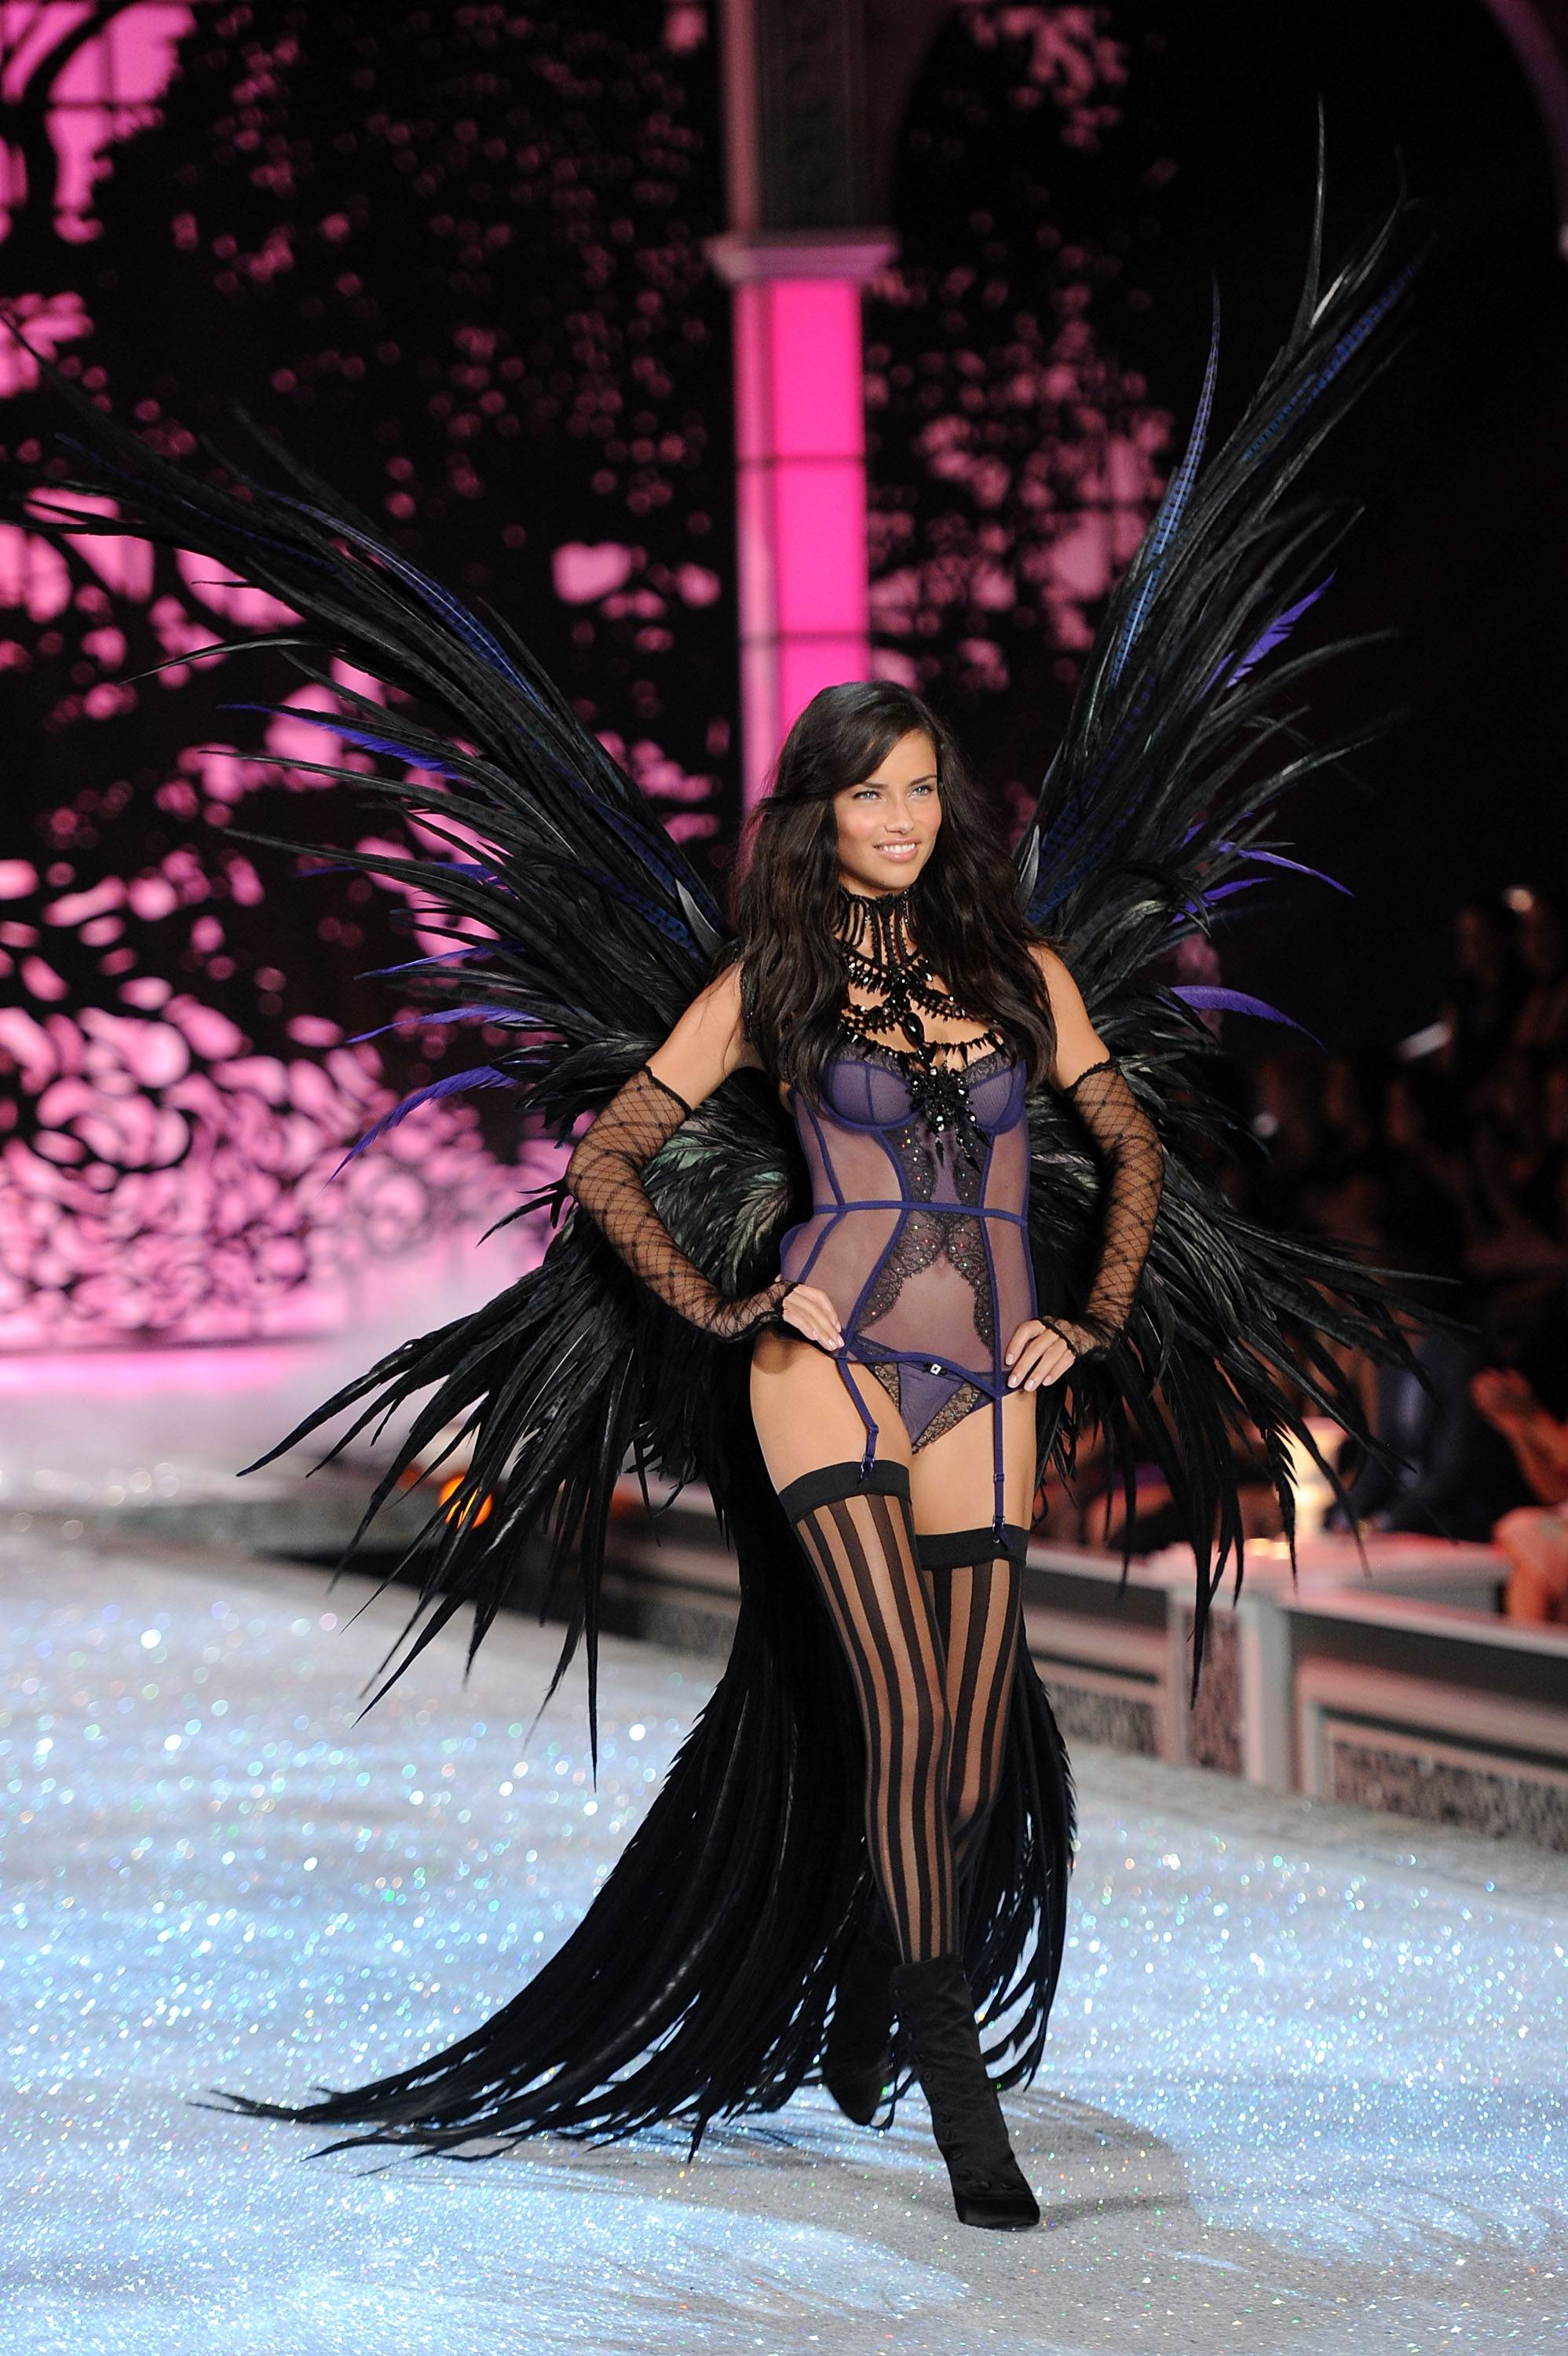 Victorias secret fashion show 2011 - Adriana Lima Victoria S Secret Fashion Show 2011